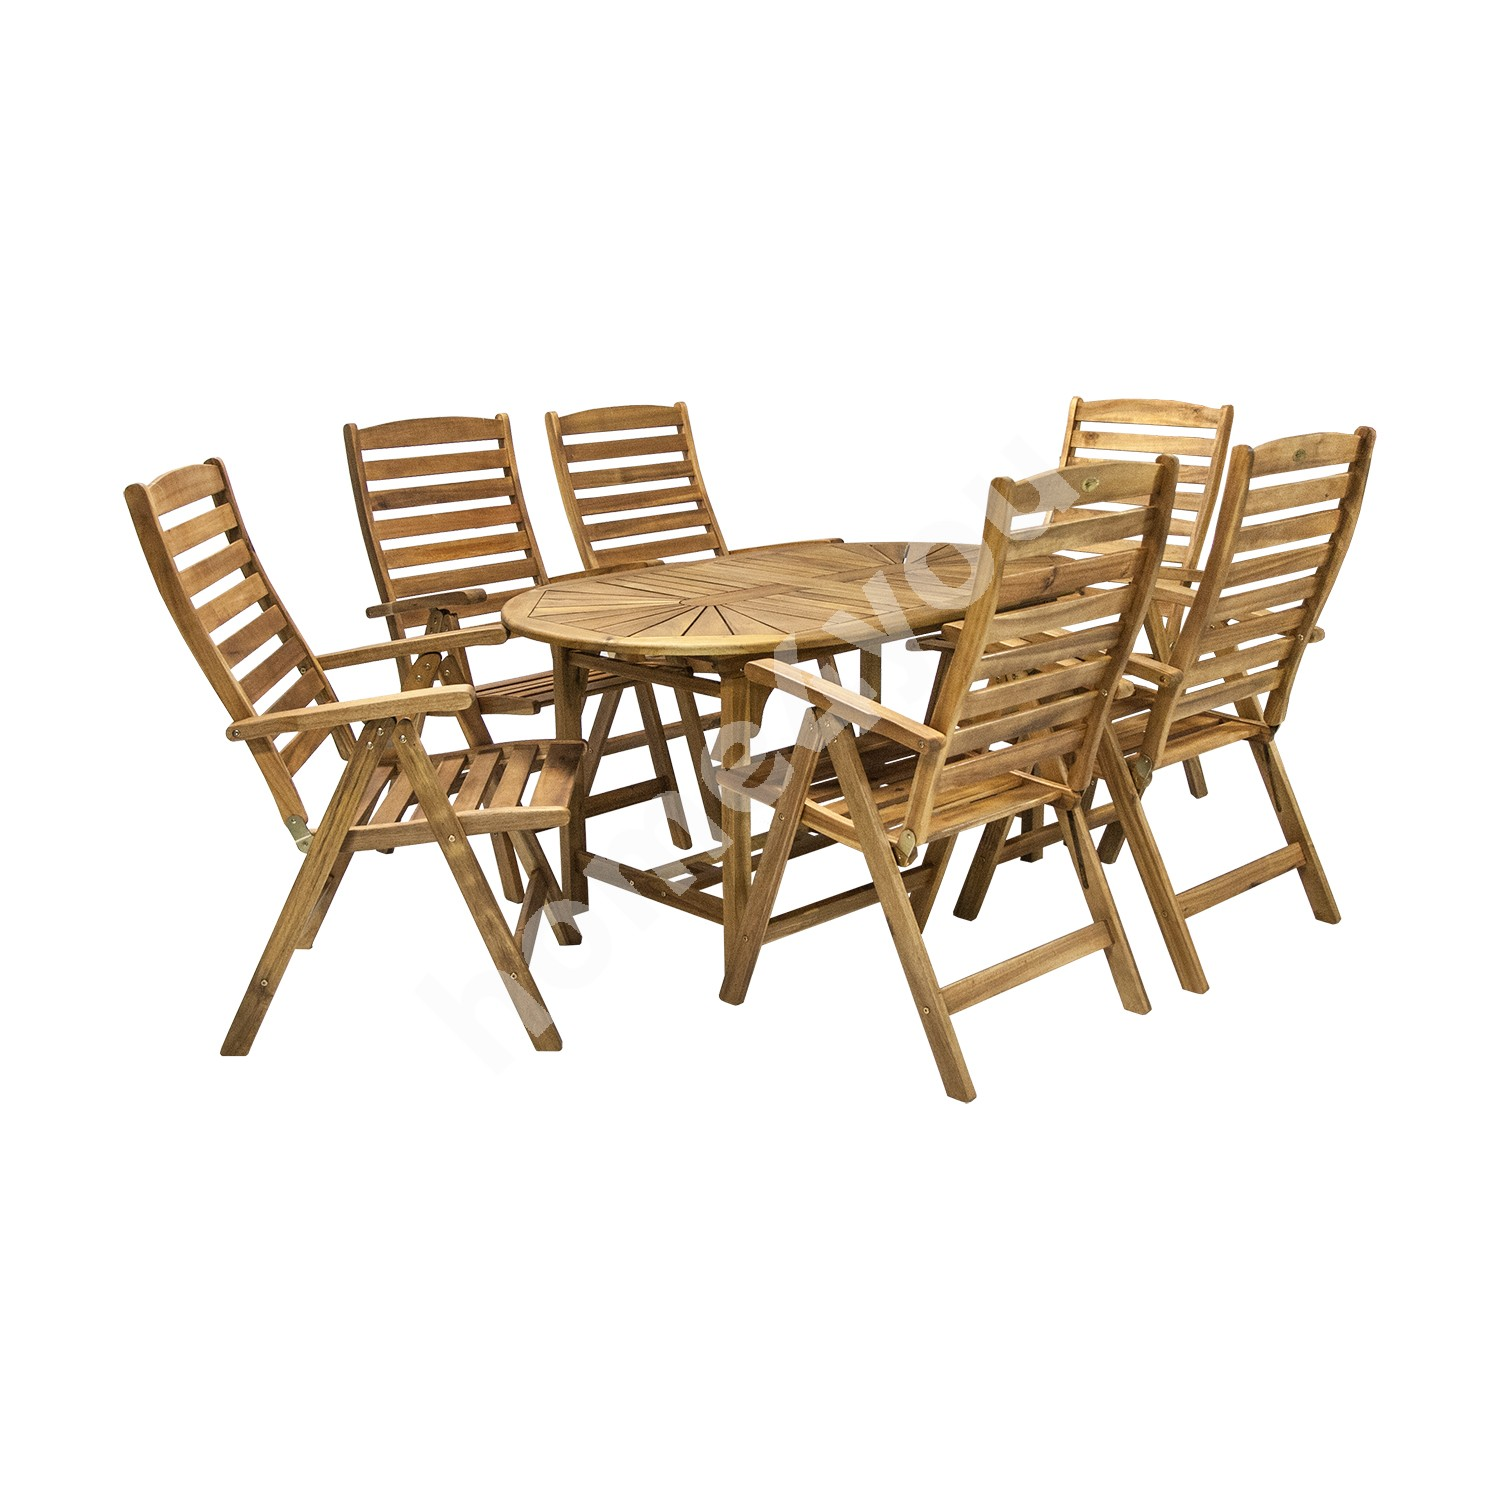 Set FINLAY table and 6 chairs (13184), 153/195x90xH72cm, extendable, wood: acacia, finish: oiled